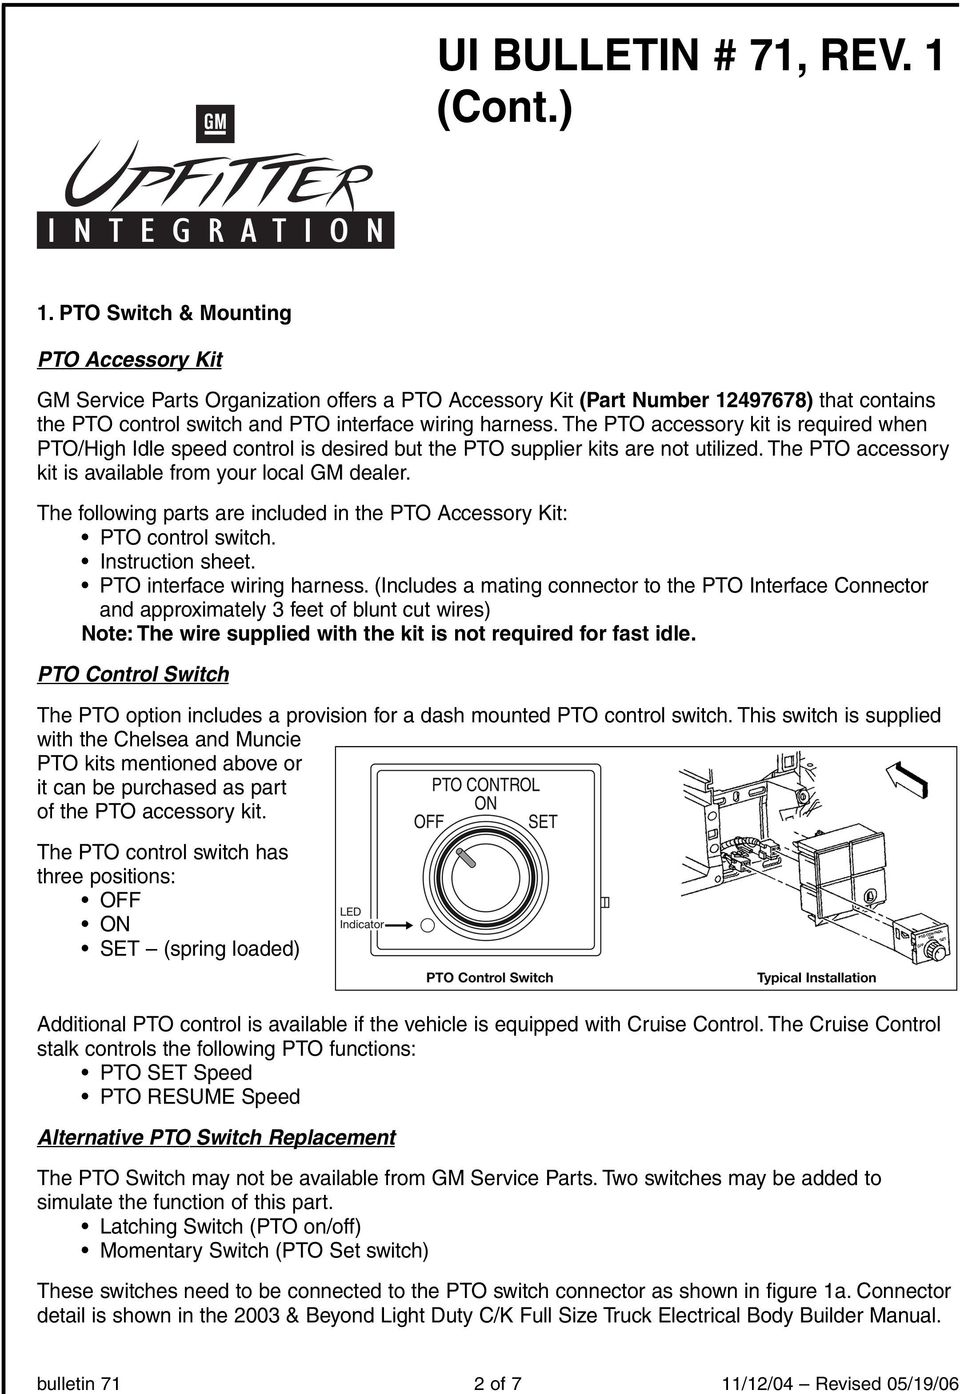 Ui Bulletin 71 Rev 1 Pdf Gm Wire Harness Parts The Following Are Included In Pto Accessory Kit Control Switch Instruction